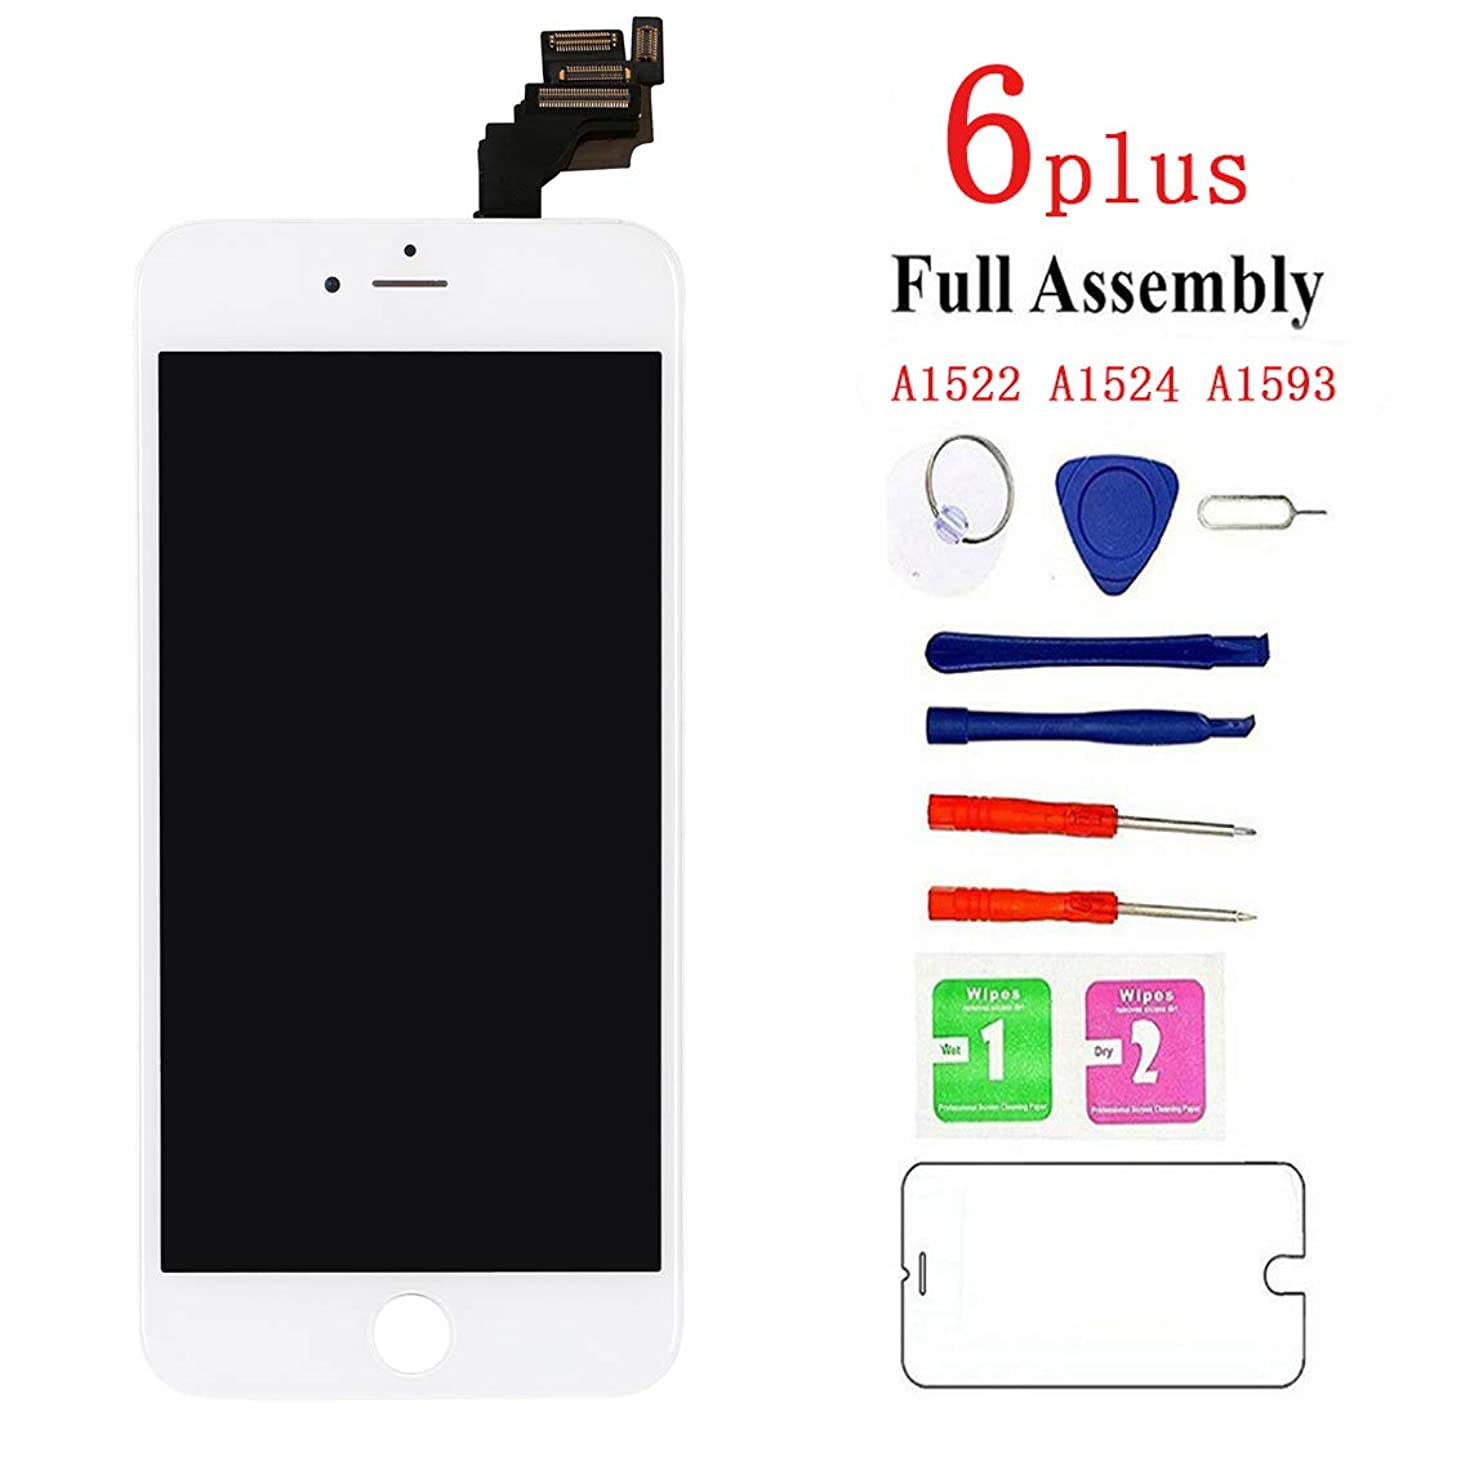 Screen Replacement for iPhone 6 plus White, Fully Pre-Assembled LCD Display and Touch Screen Digitizer Replacement with Proximity Sensor, Earspeaker and Front Camera, Repair Tools and Screen Protector